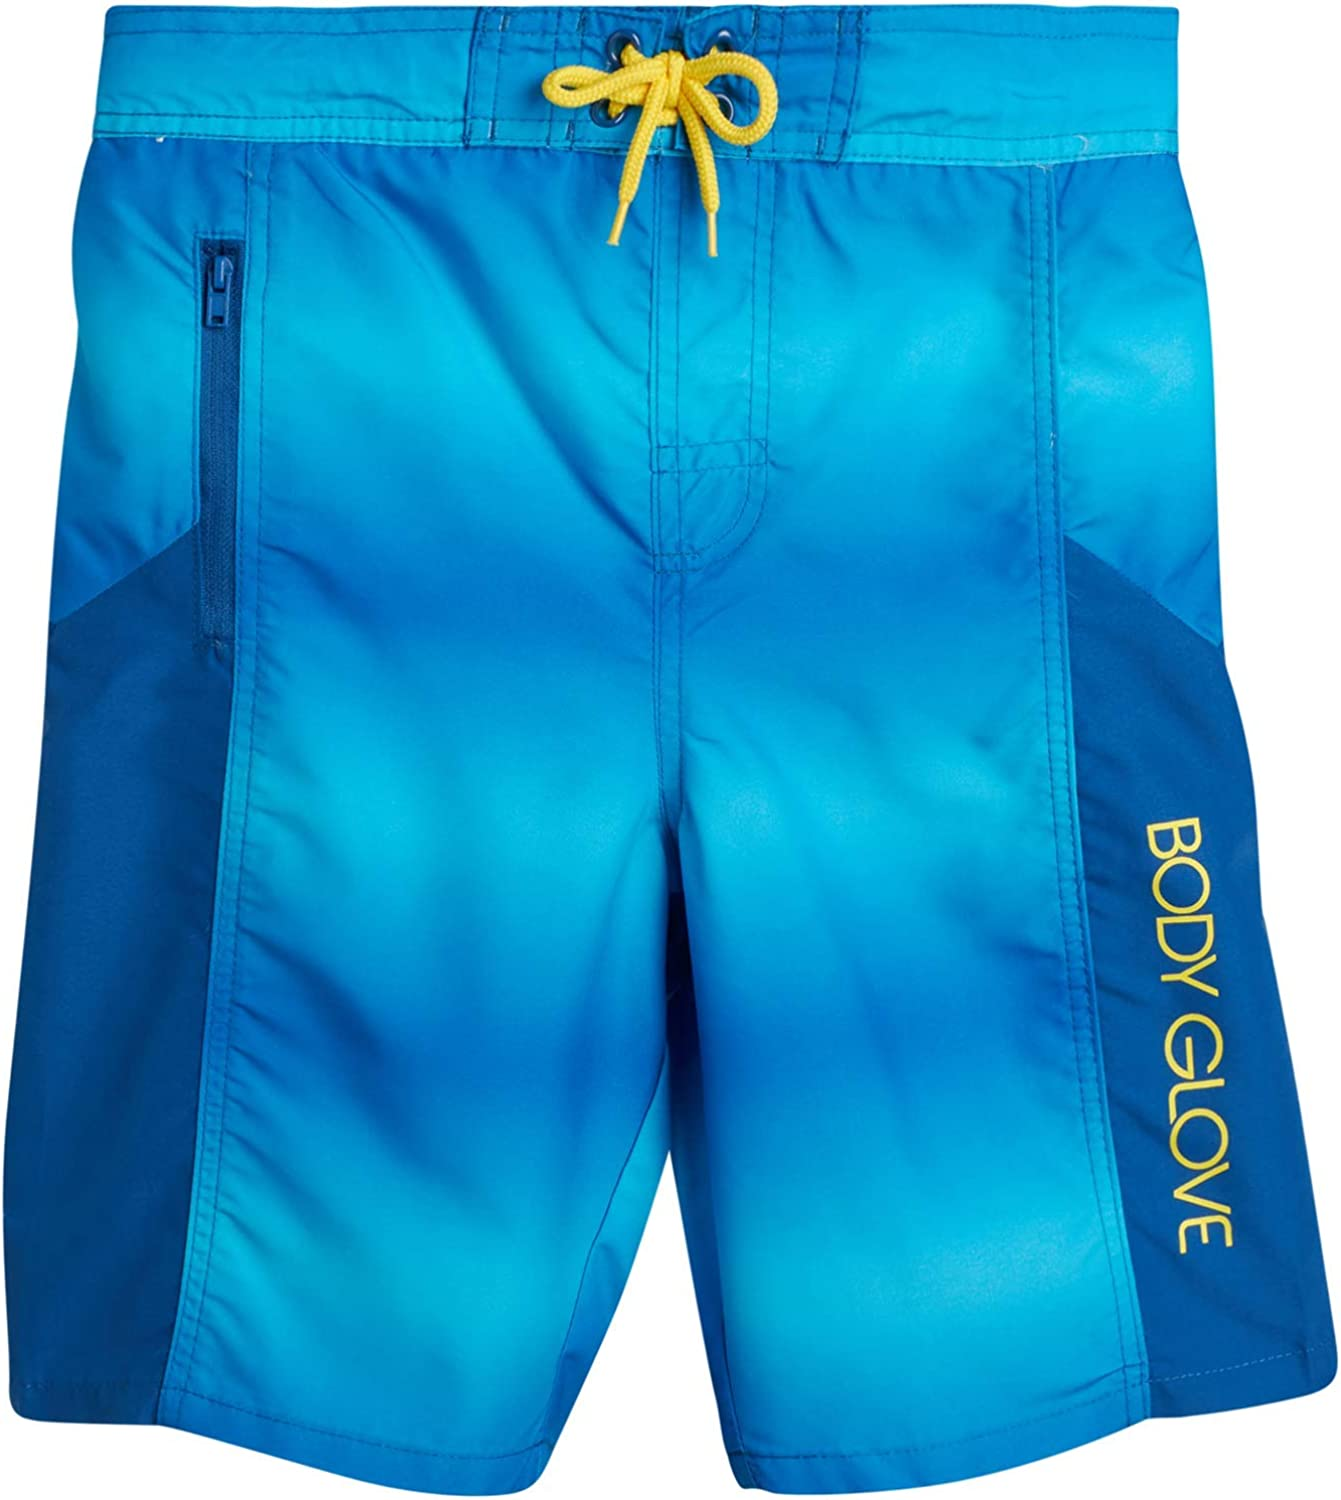 Body Glove Boys Quick-Dry Swimming Board Shorts